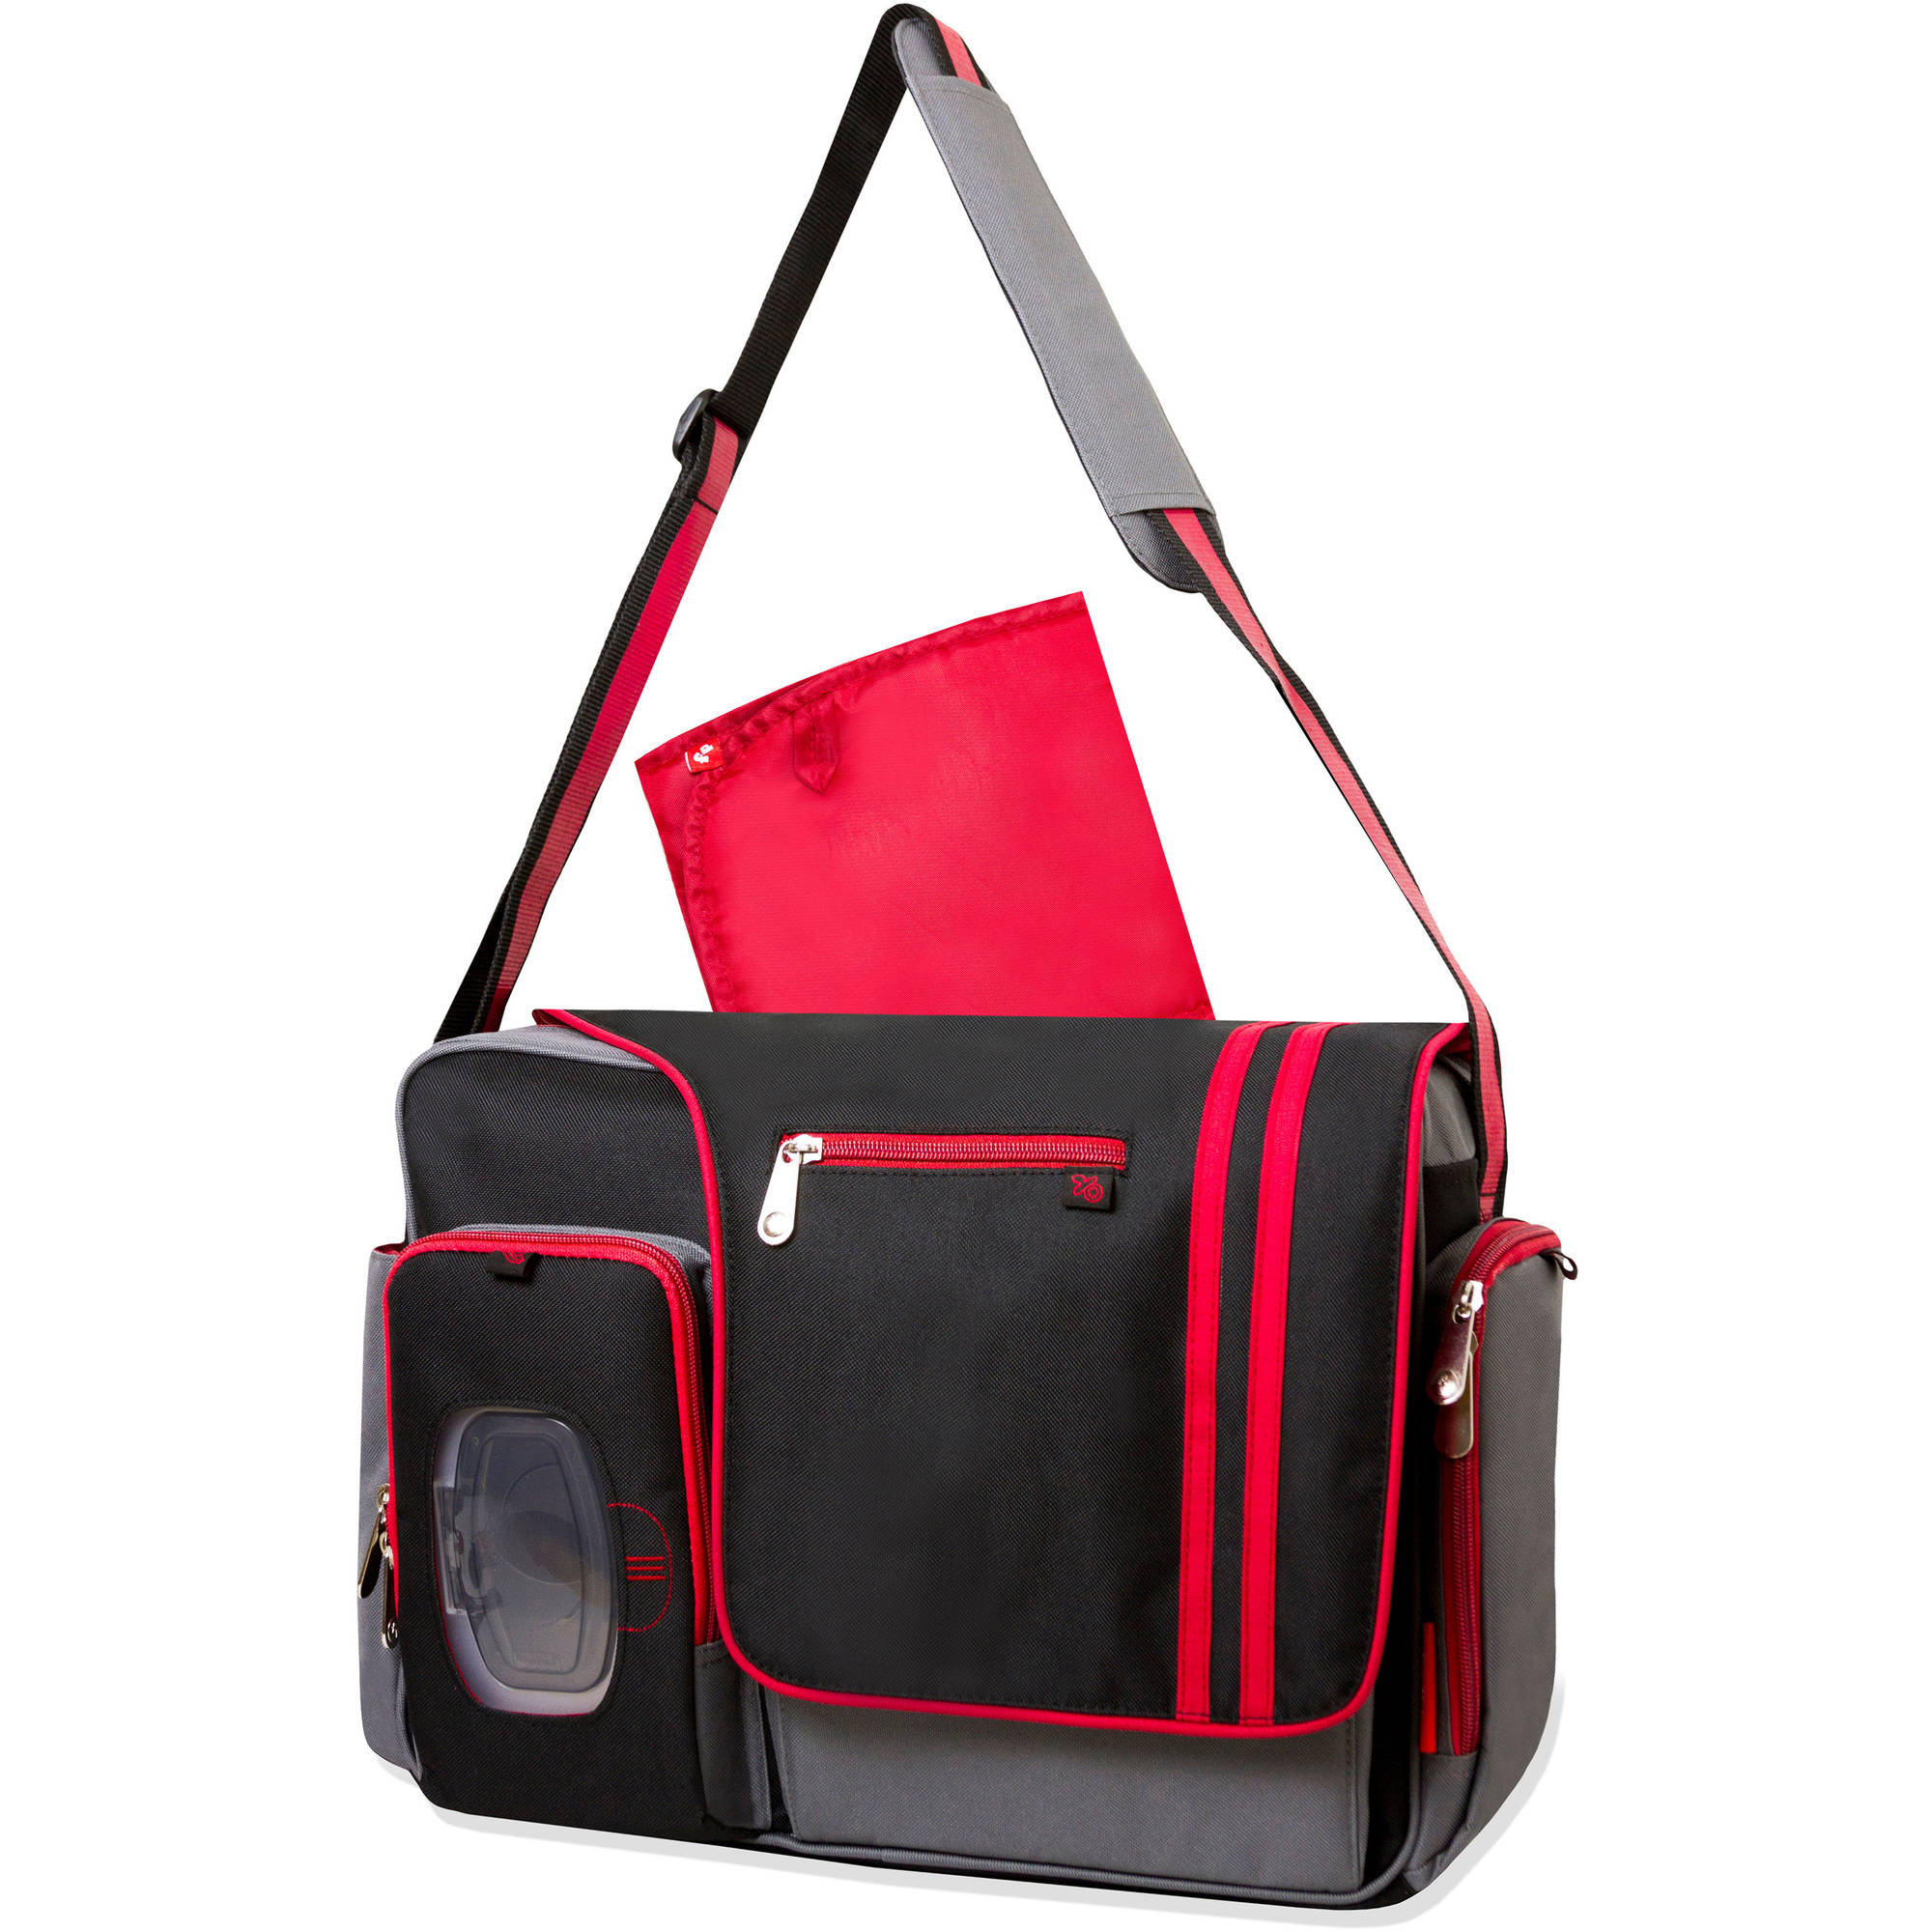 Find great deals on eBay for red and black handbag. Shop with confidence.